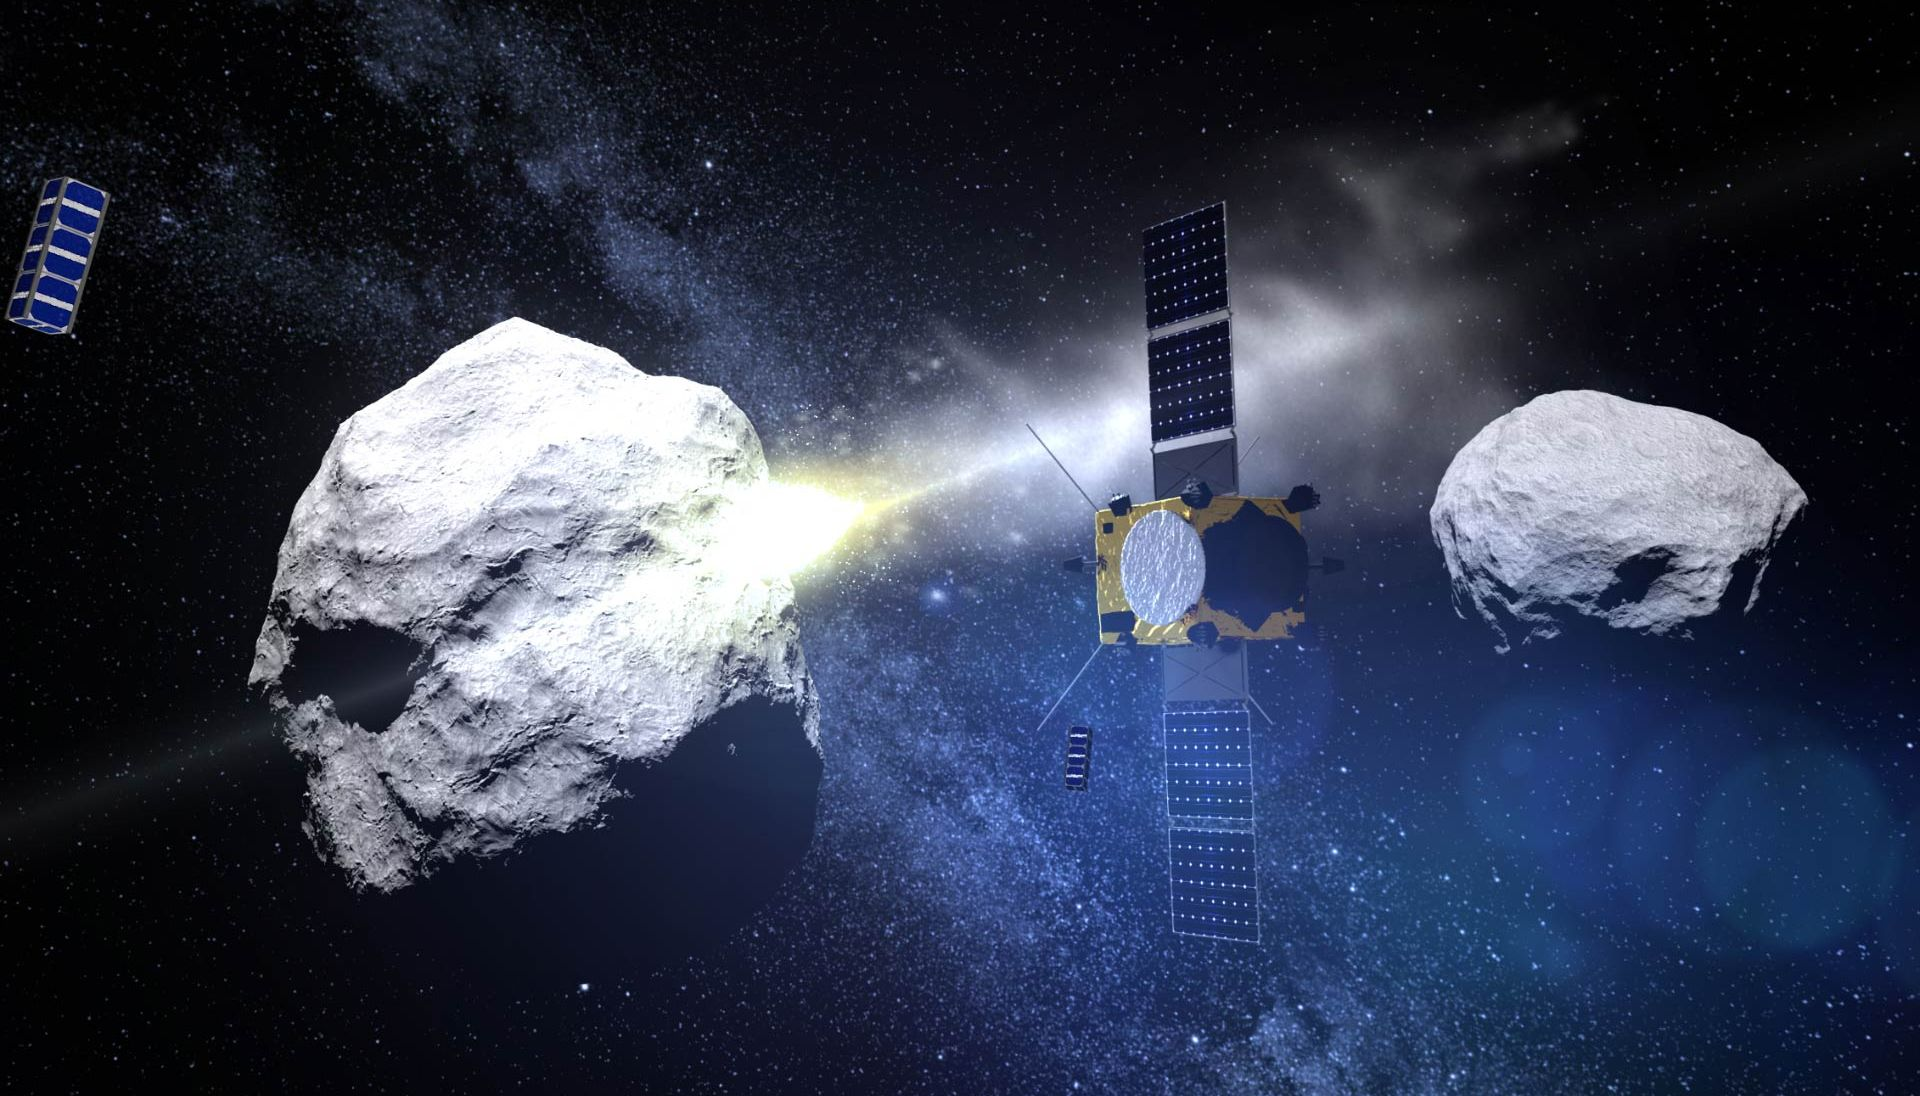 NASA and ESA will take the asteroid to RAM in 2024